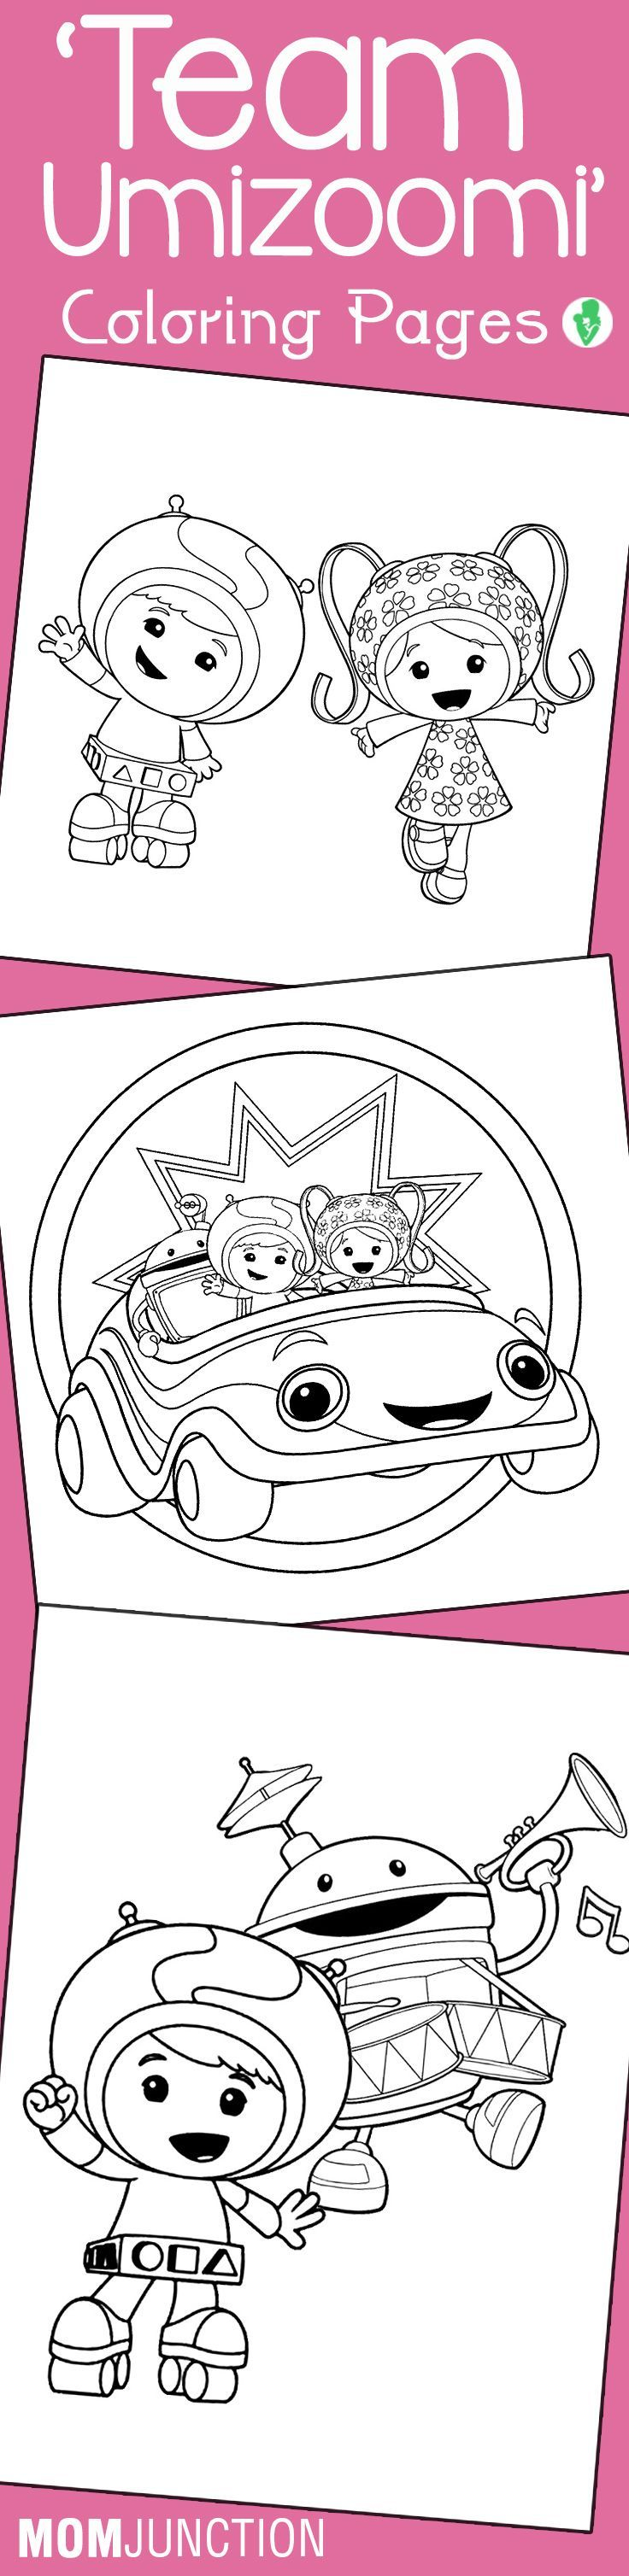 10 Best \'Team Umizoomi\' Coloring Pages For Your Toddler